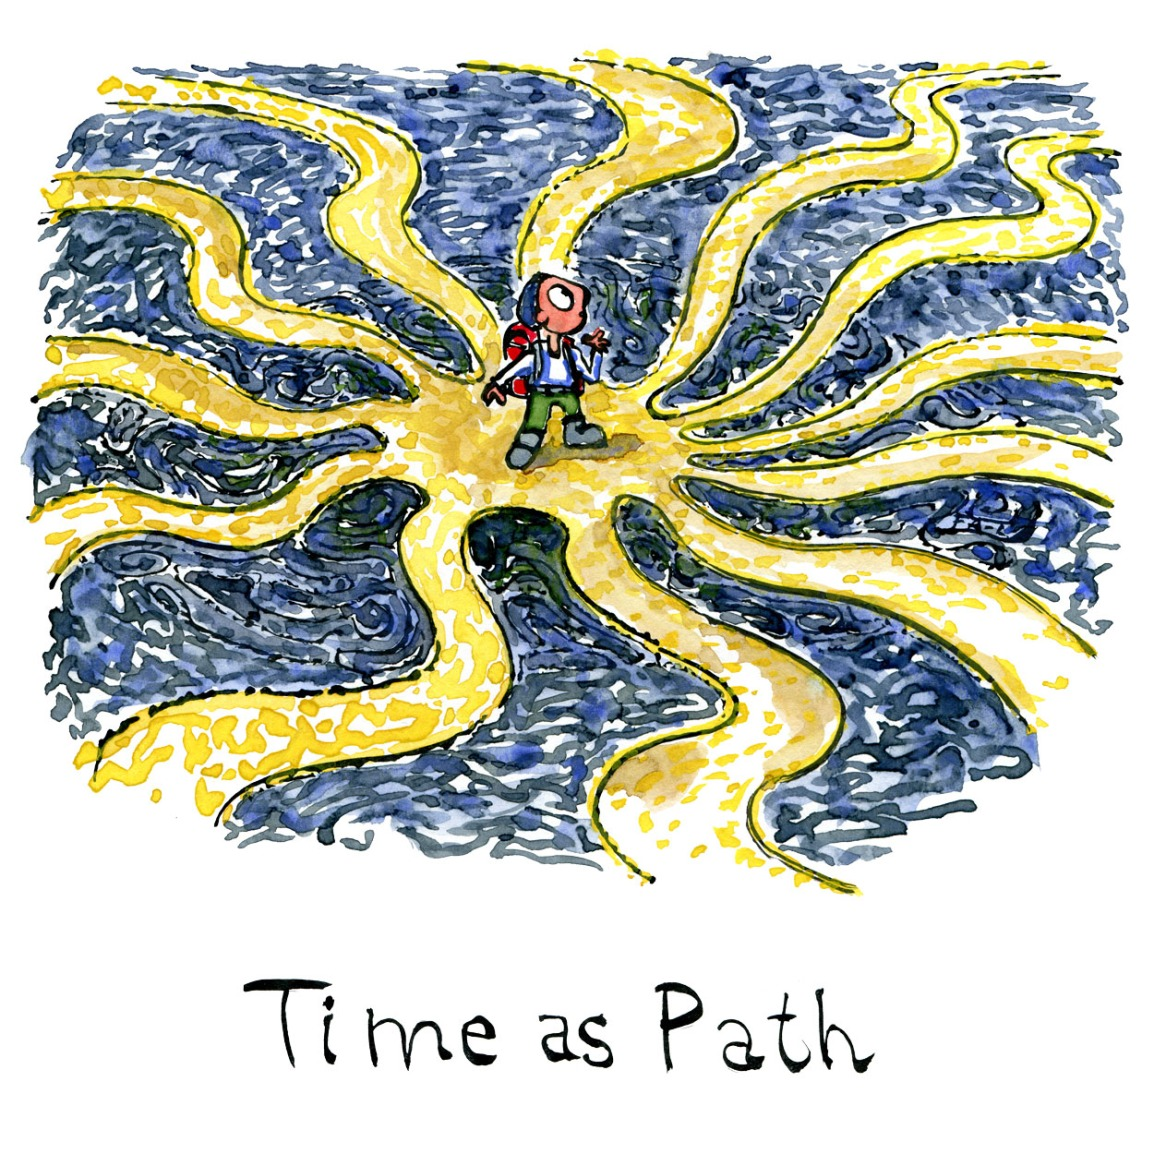 Time as path